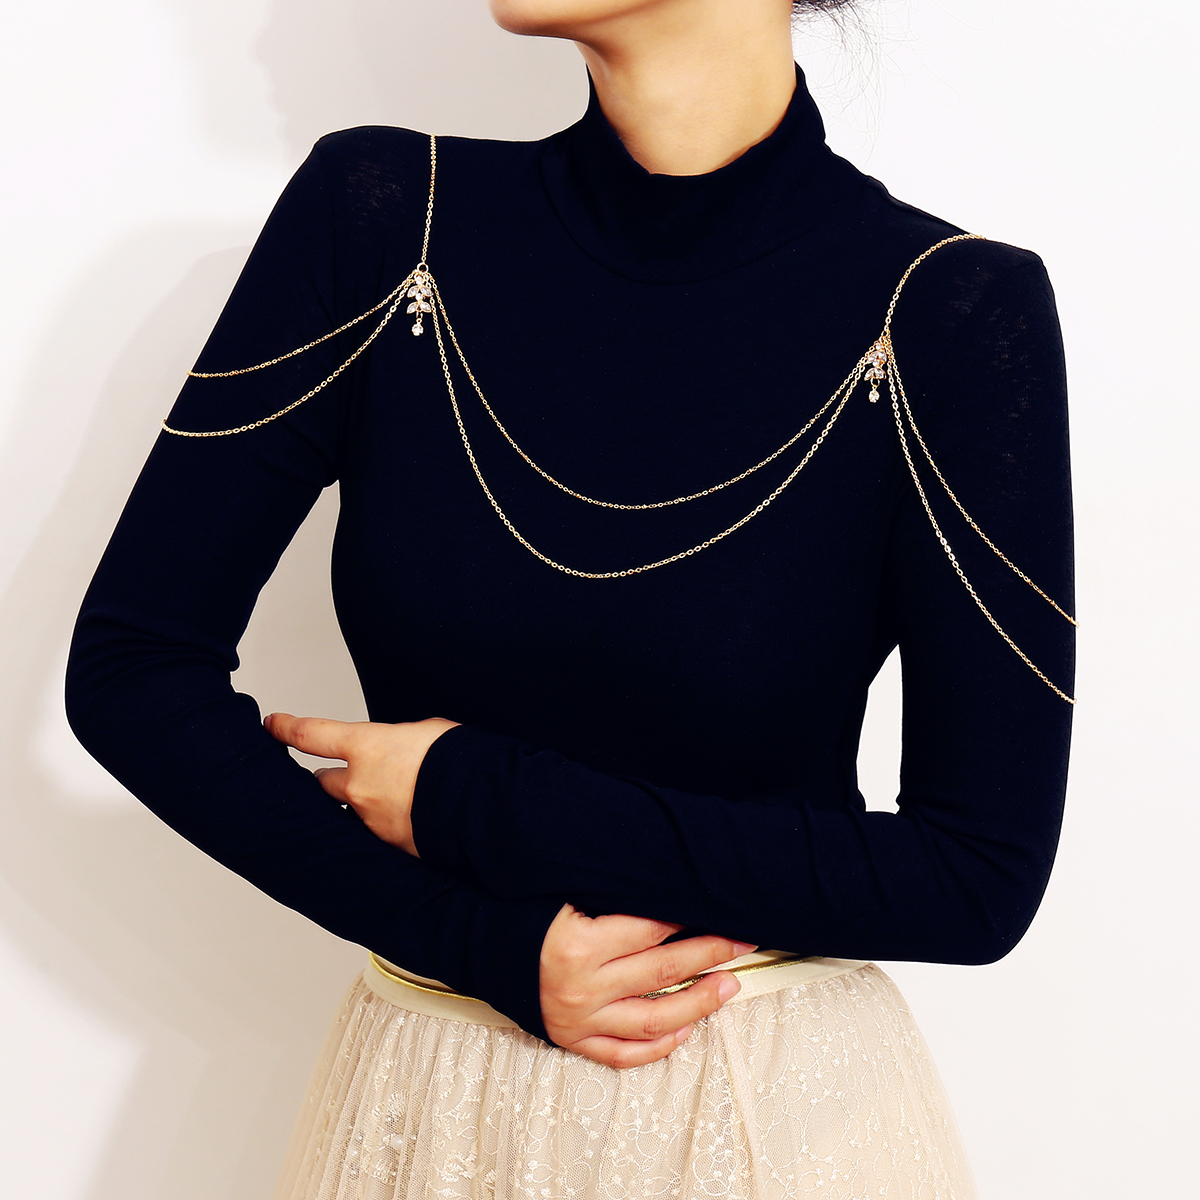 2021 new shoulder chain shoulder accessories for women in Europe and America